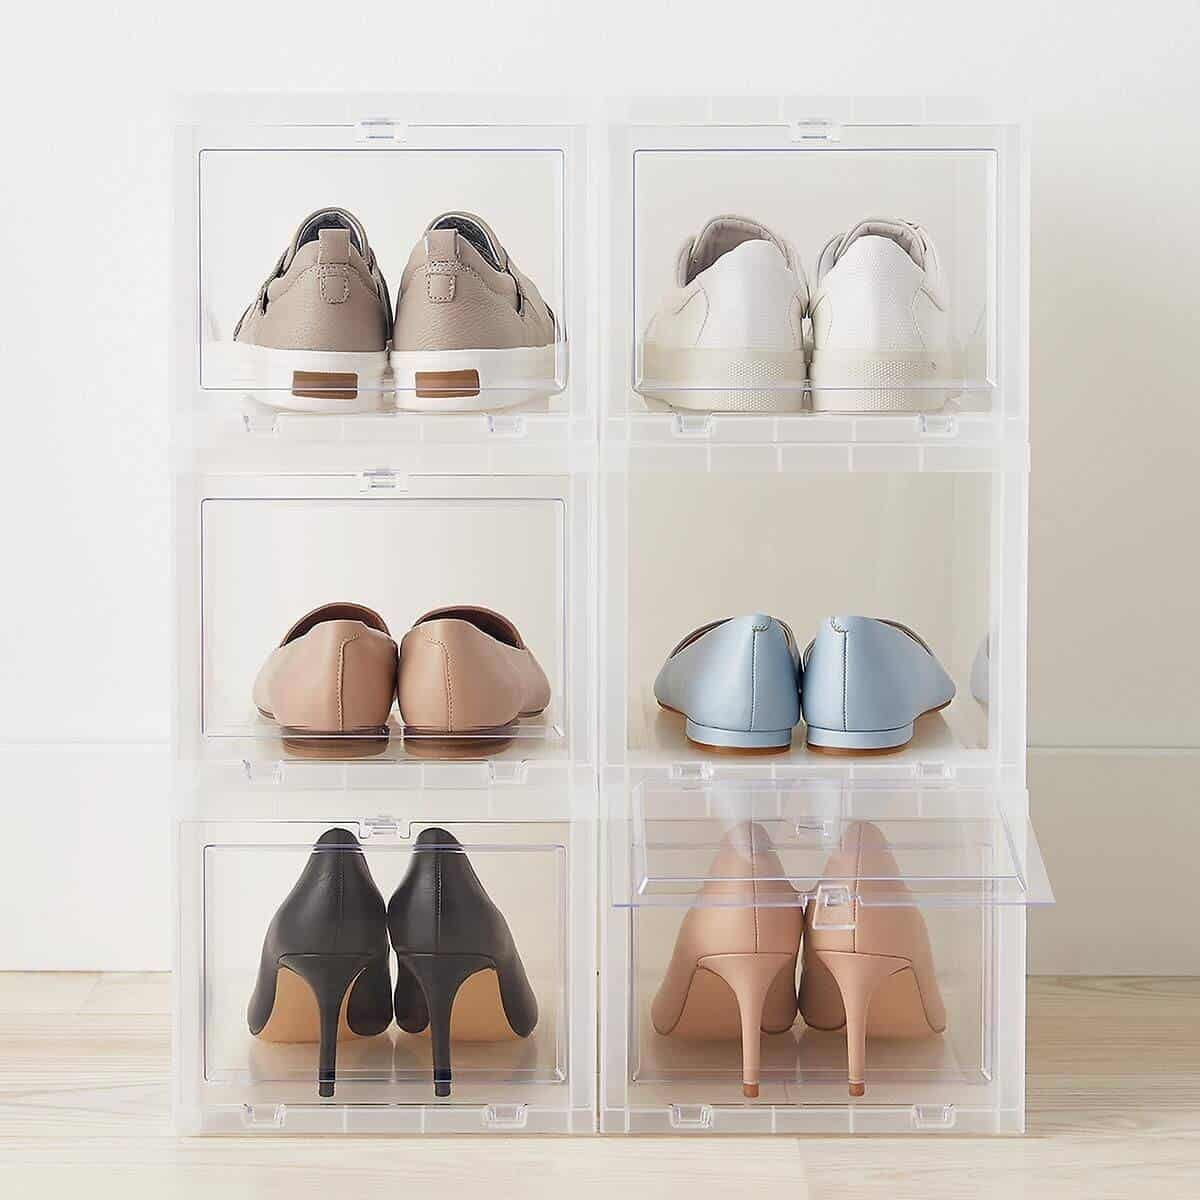 Two stacks of three clear shoe boxes with shoes in them.